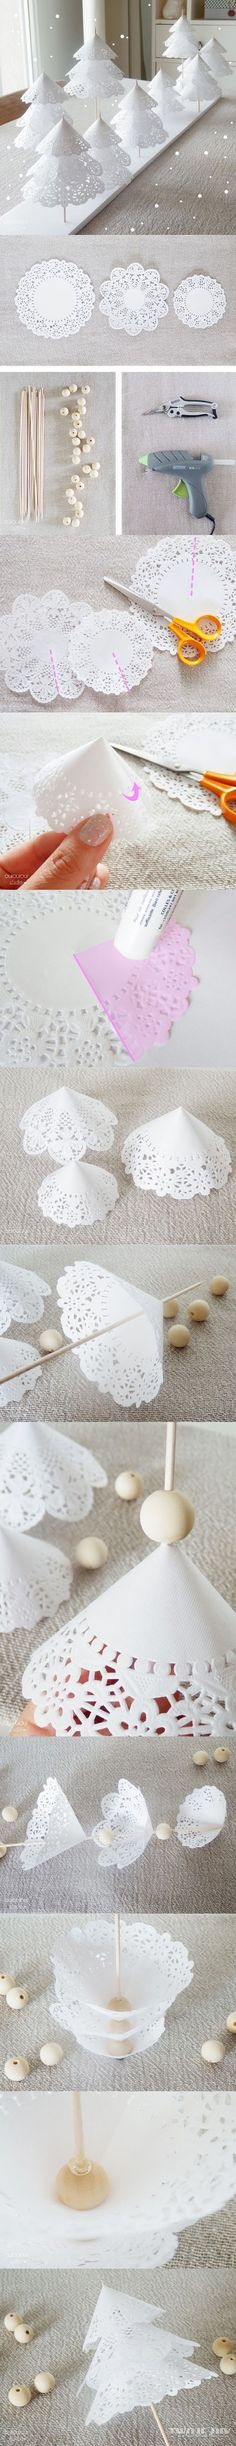 Doily Christmas Trees Pictures, Photos, and Images for Facebook, Tumblr, Pinterest, and Twitter